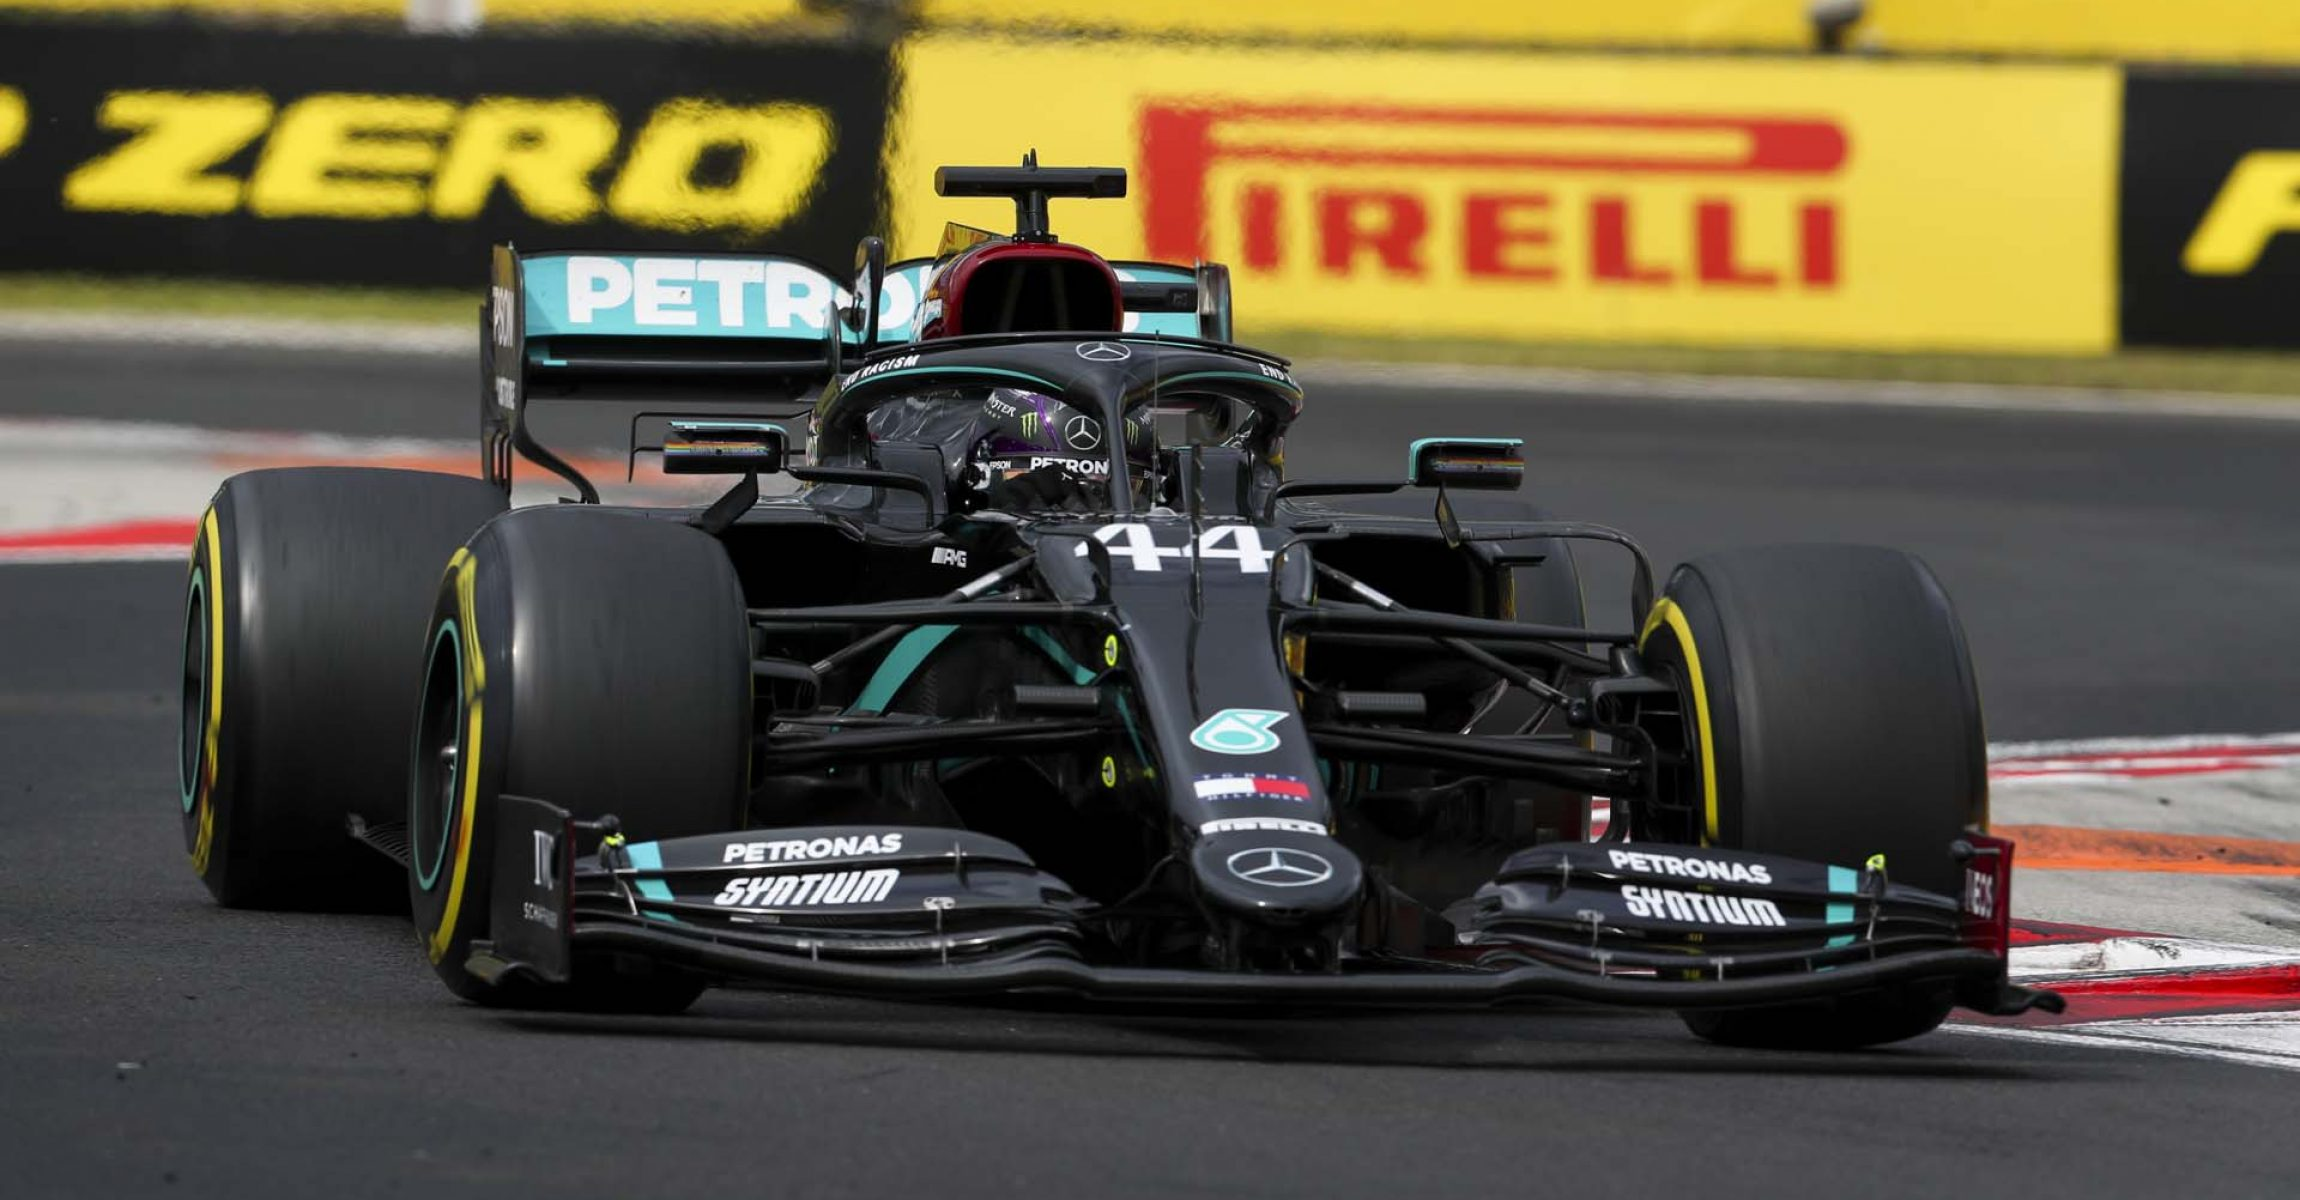 2020 Hungarian Grand Prix, Sunday - LAT Images Lewis Hamilton Mercedes